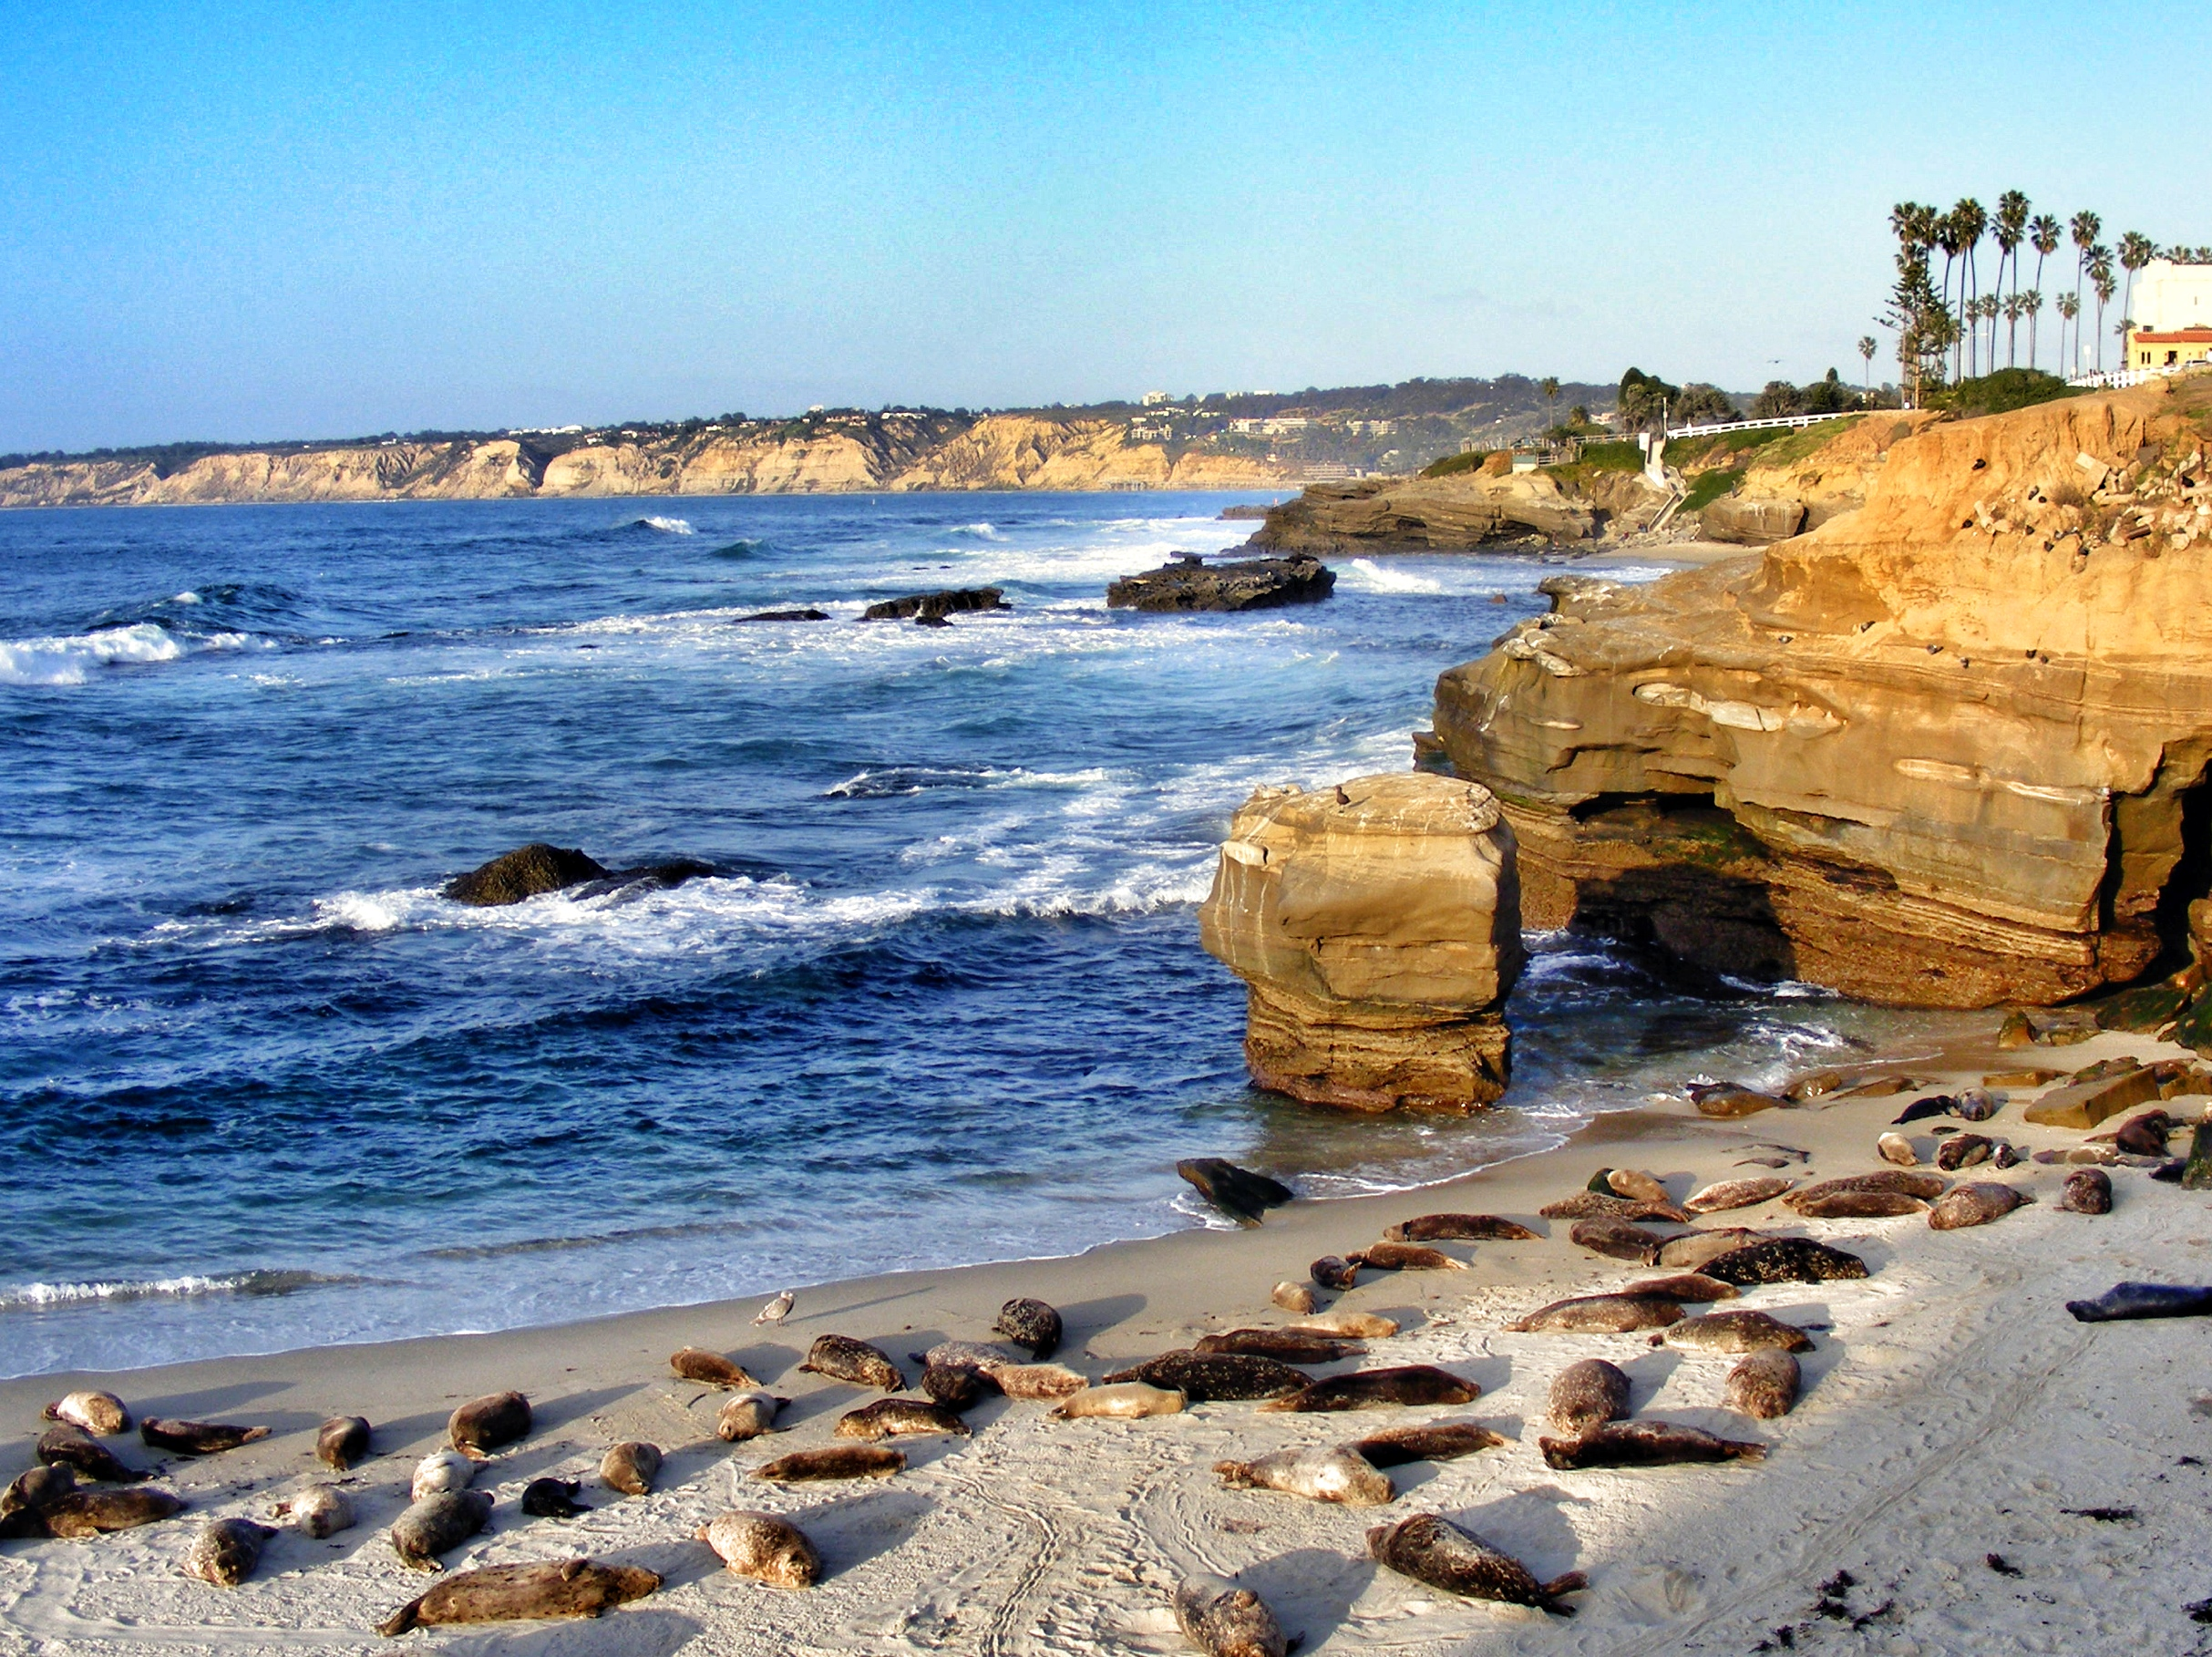 Casa Beach in La Jolla with Harbor Seals in the foreground and the rocks with the sea lions in the middle distance